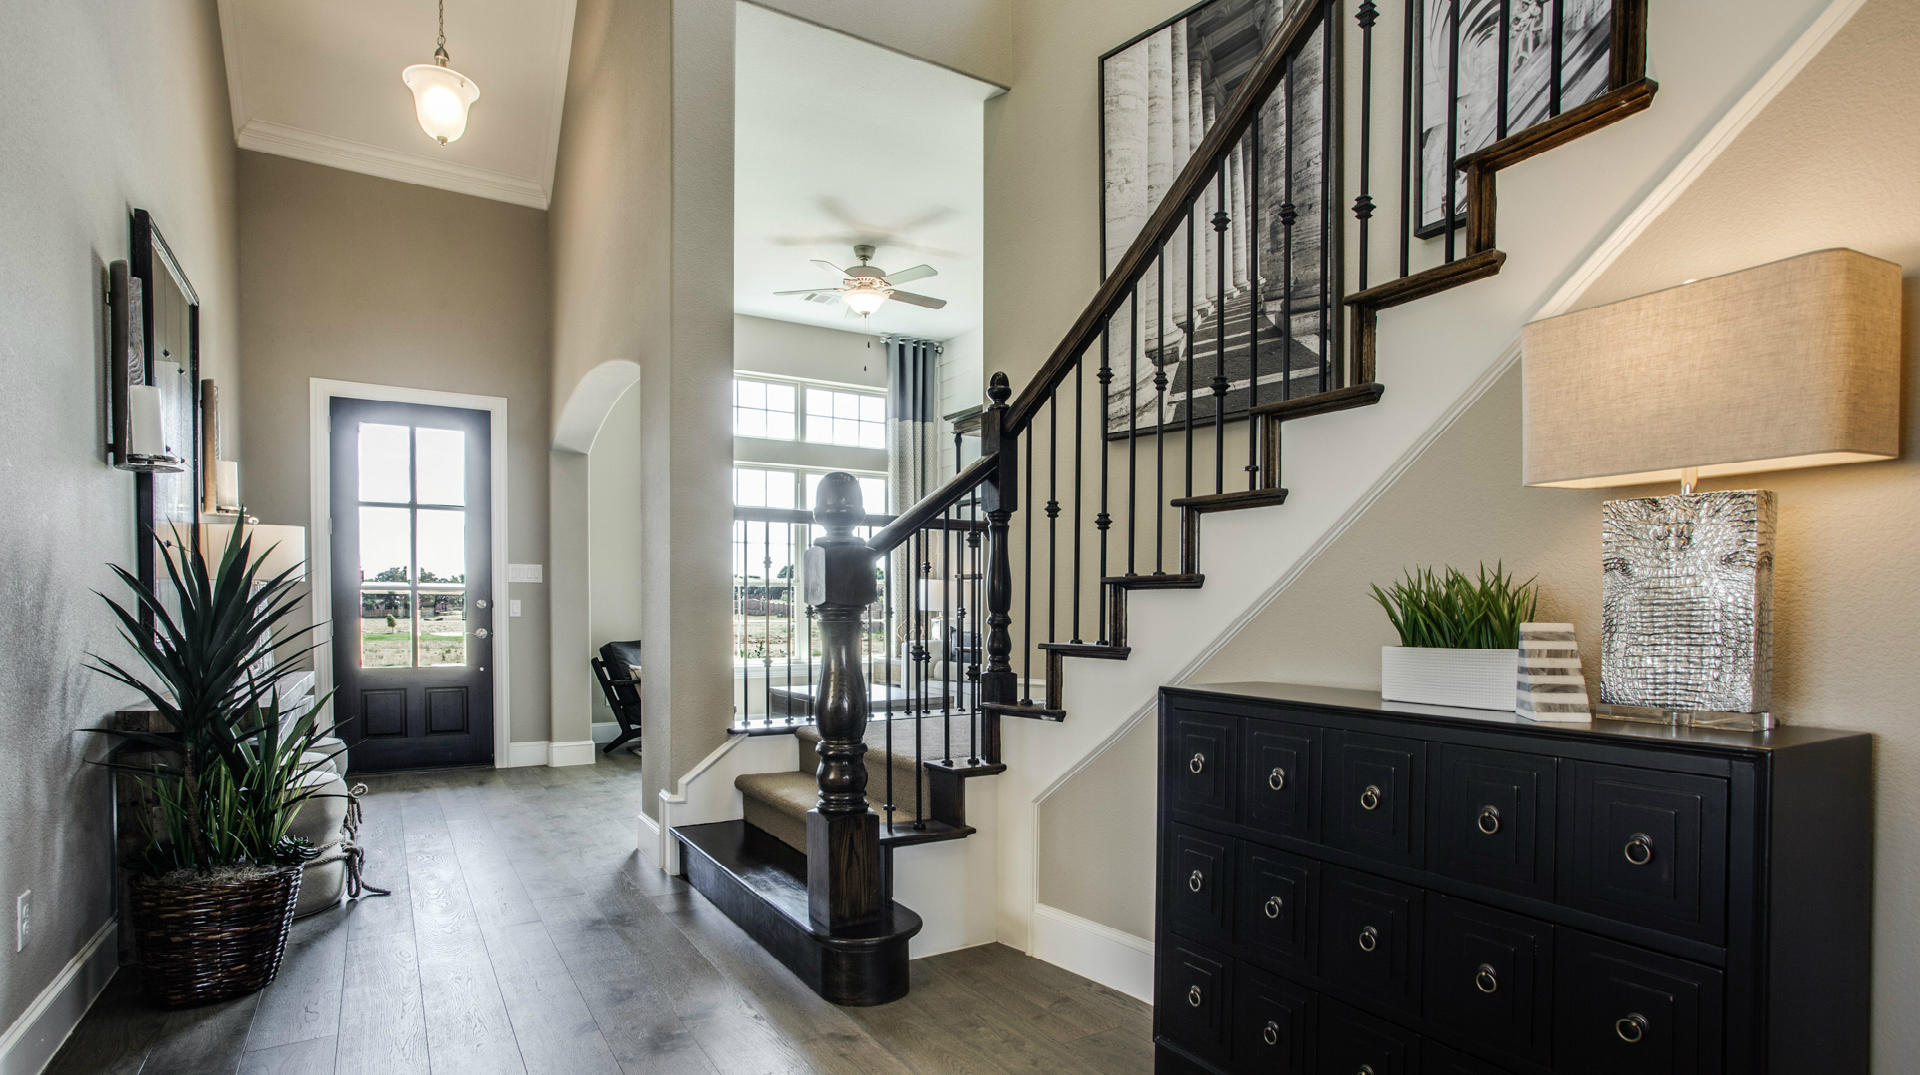 Reserve at Forest Glenn by Pulte Homes image 3